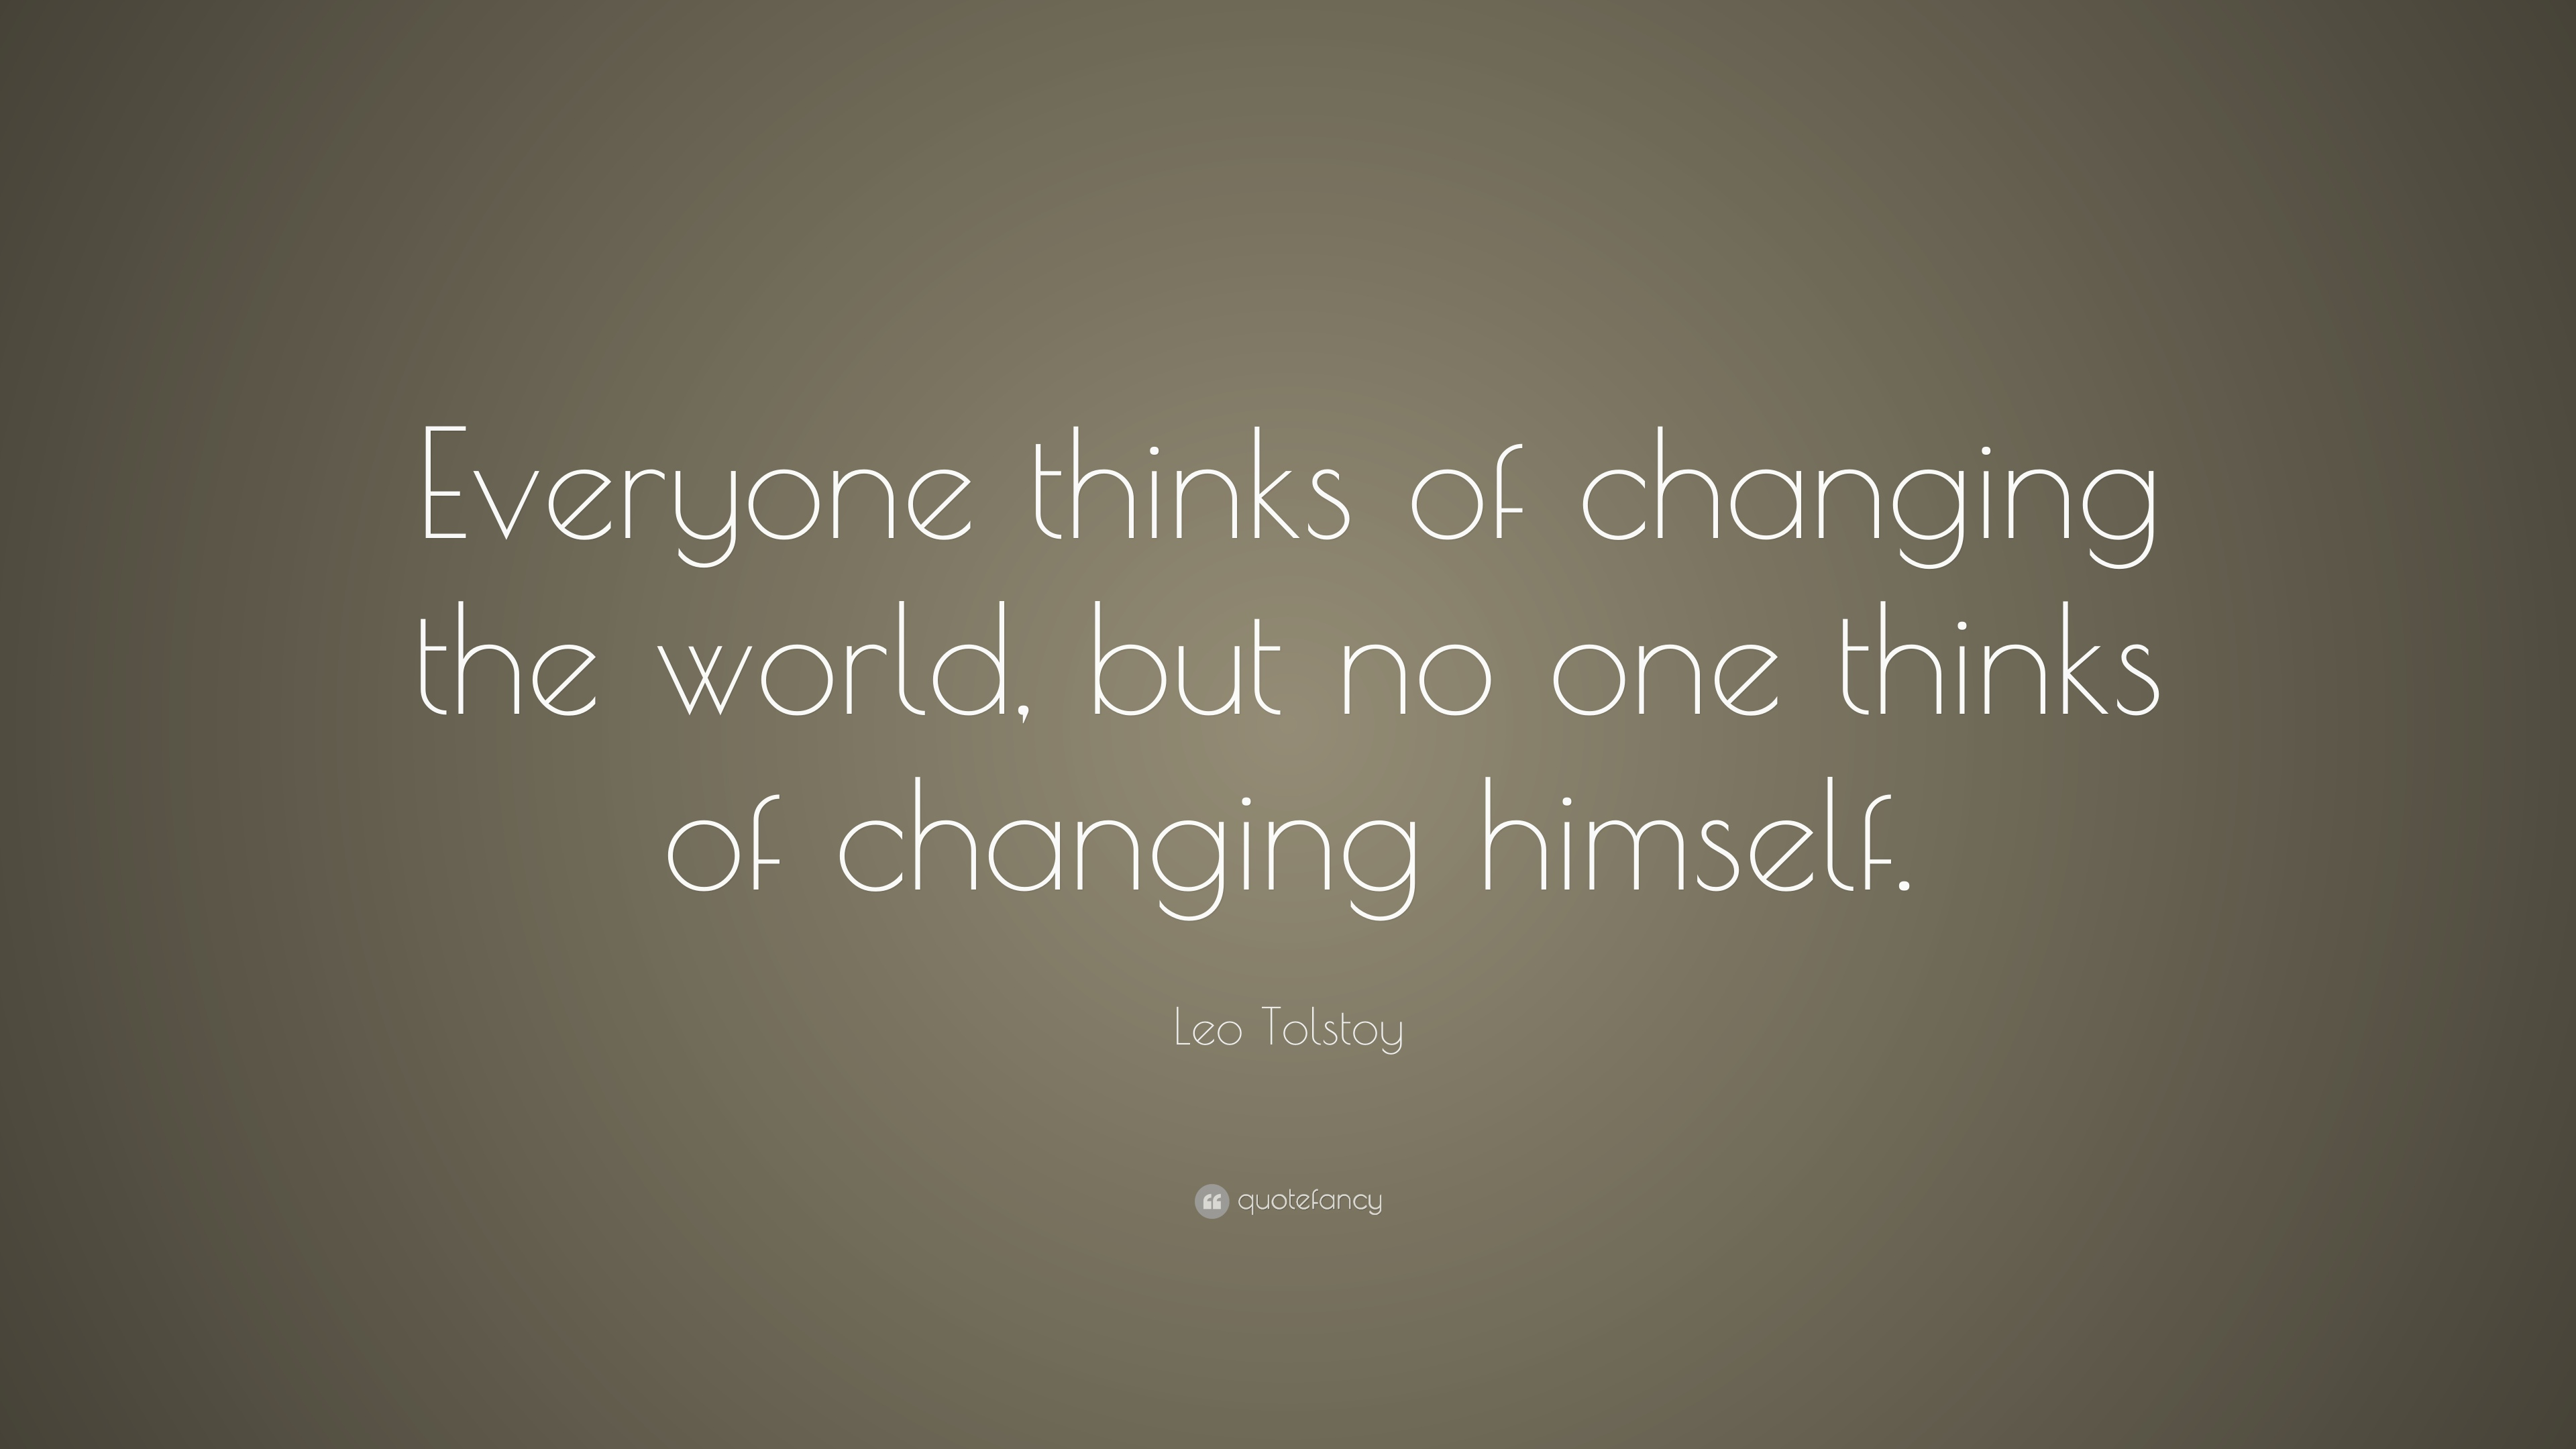 """Leo Tolstoy Quotes 100 Wallpapers: Leo Tolstoy Quote: """"Everyone Thinks Of Changing The World"""